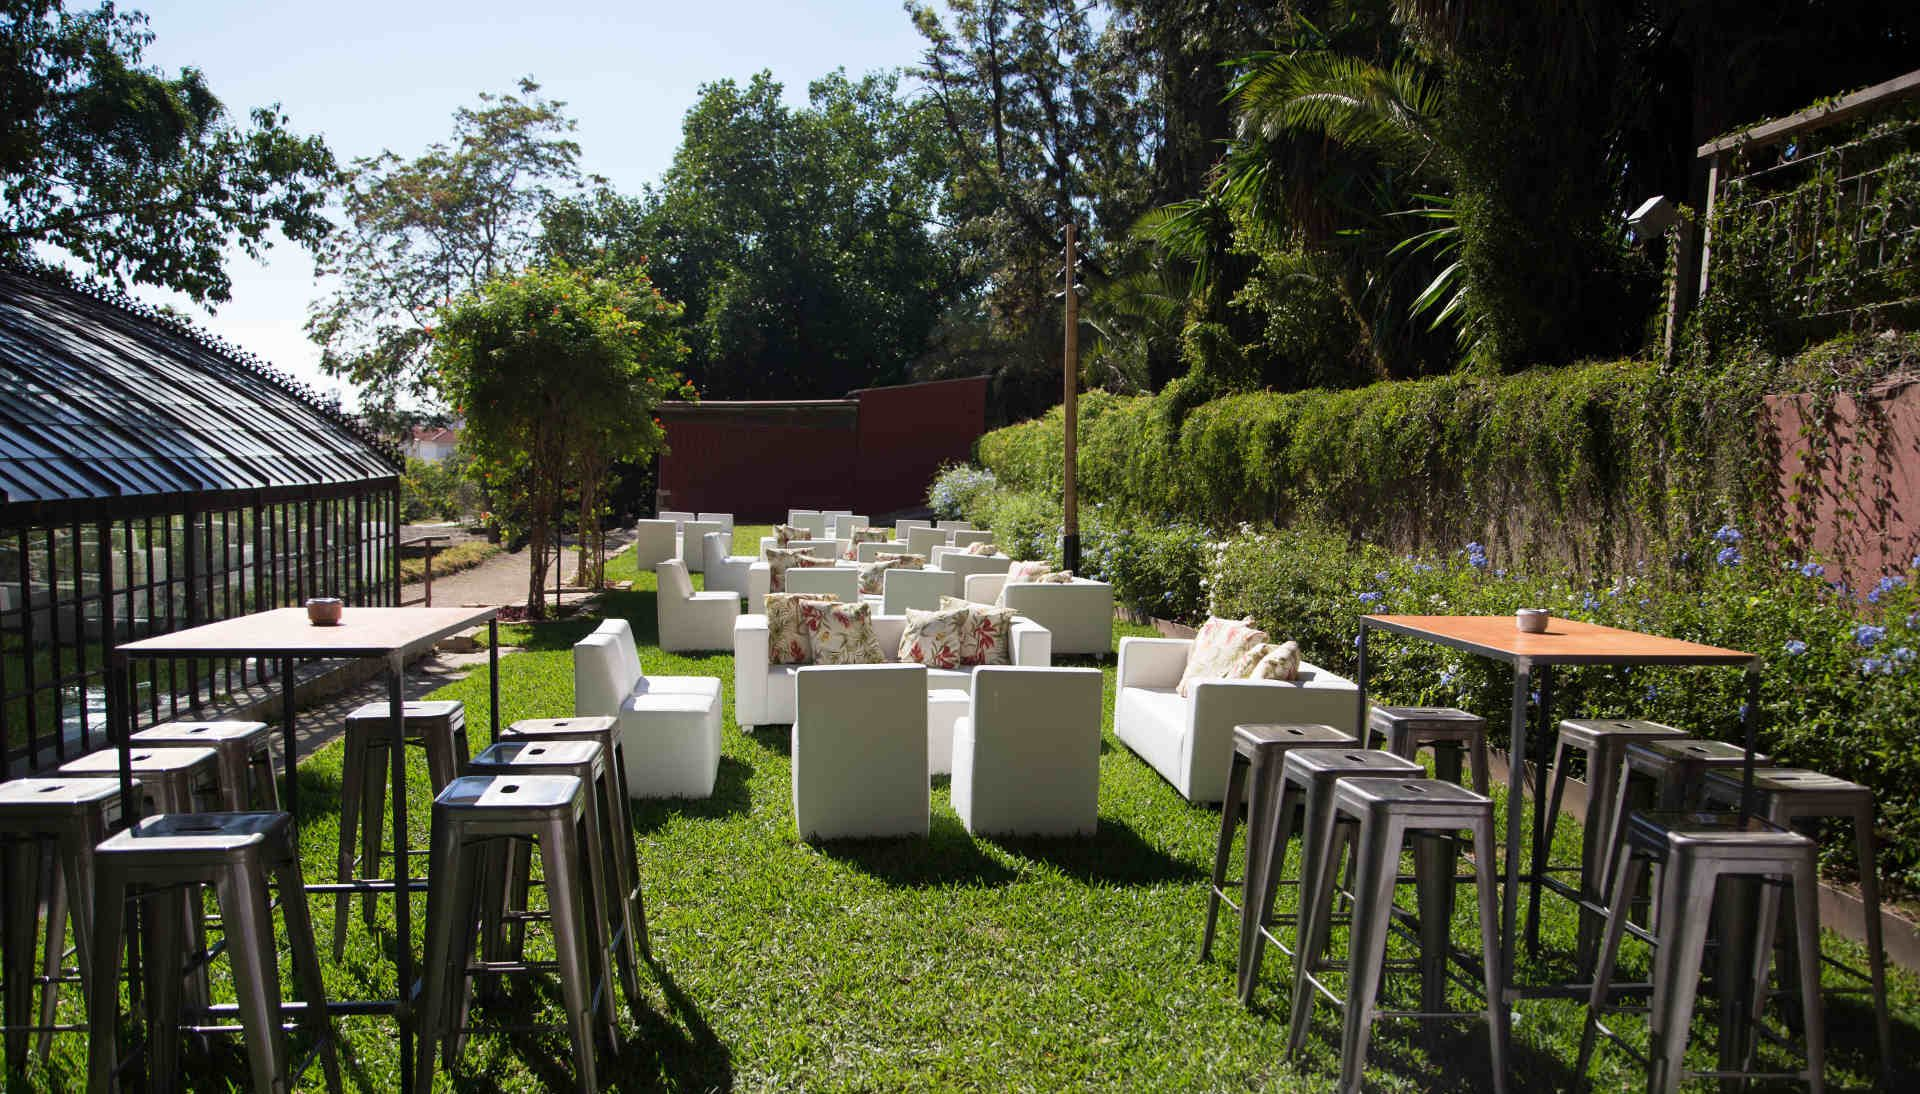 Decoraci n eventos bodas y bautizos muebles chill out for Muebles chill out